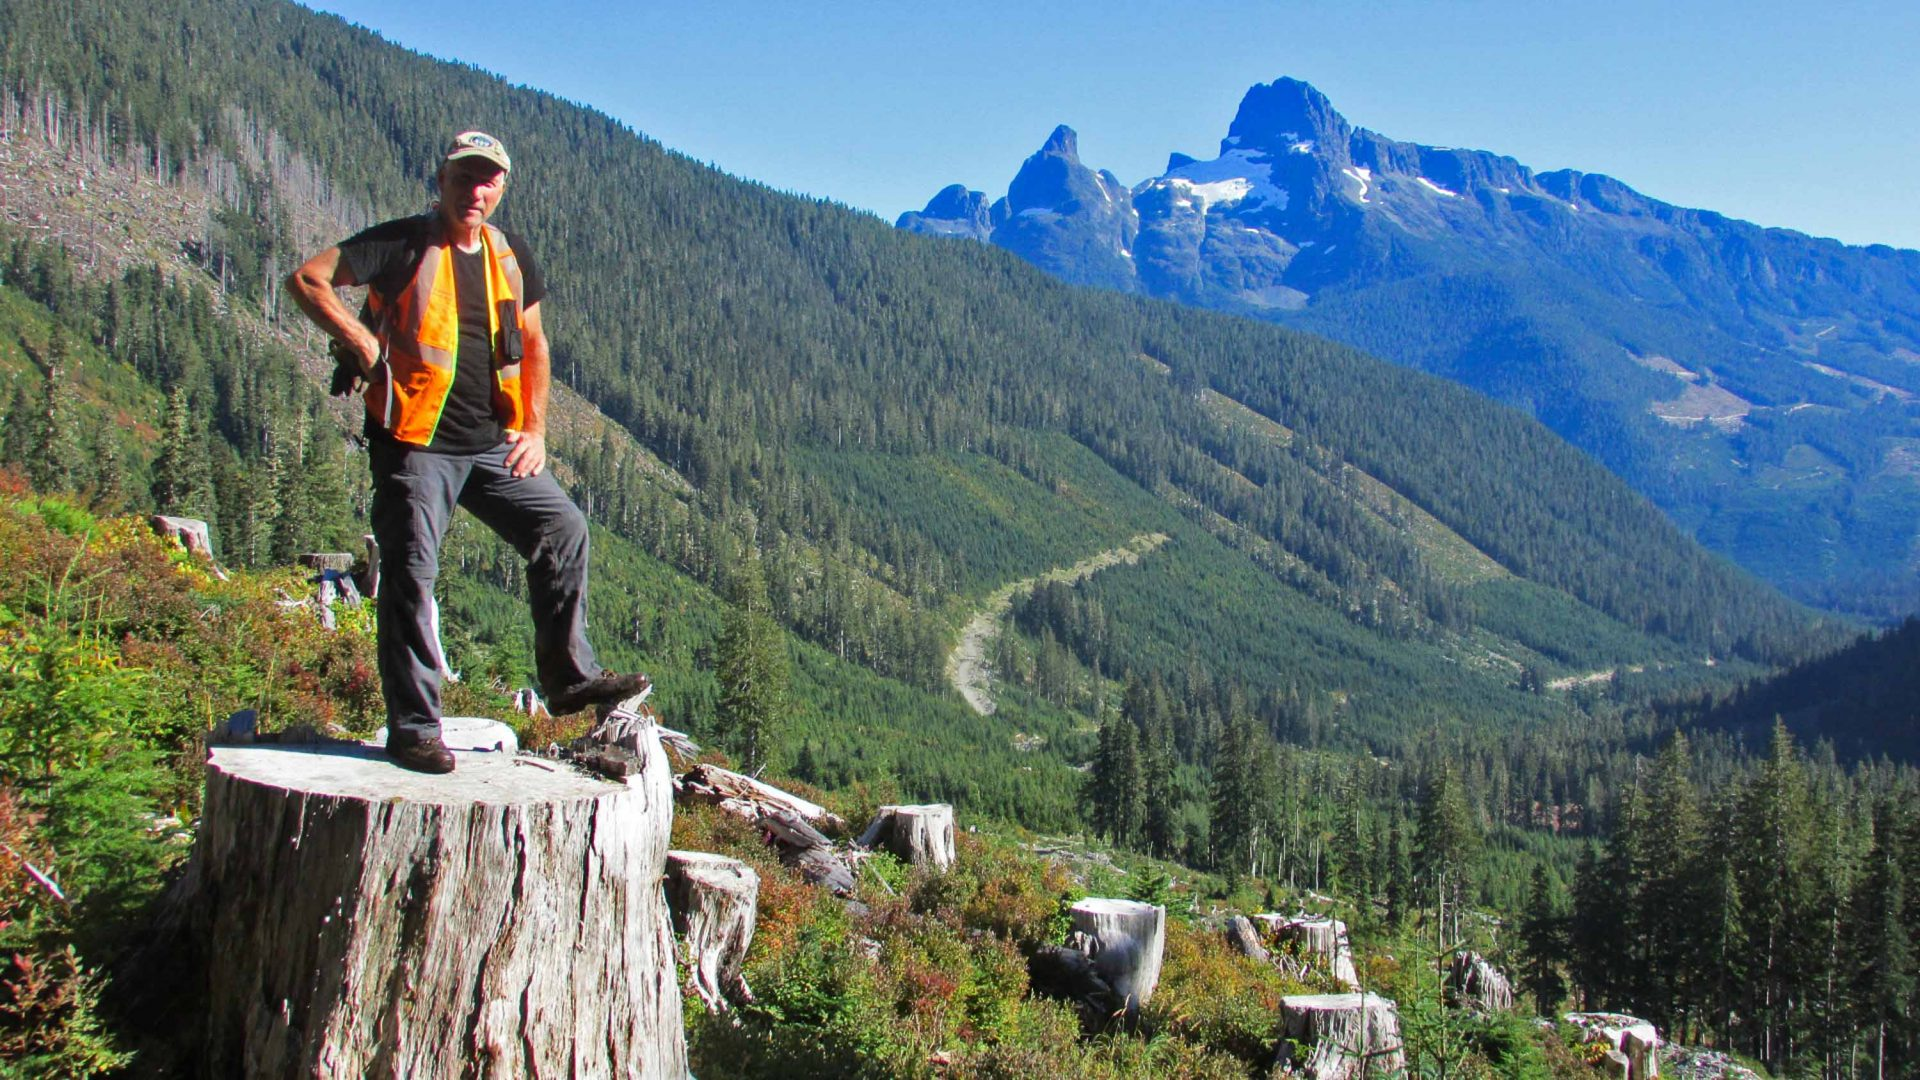 A man stands on a log on part of a cleared trail.